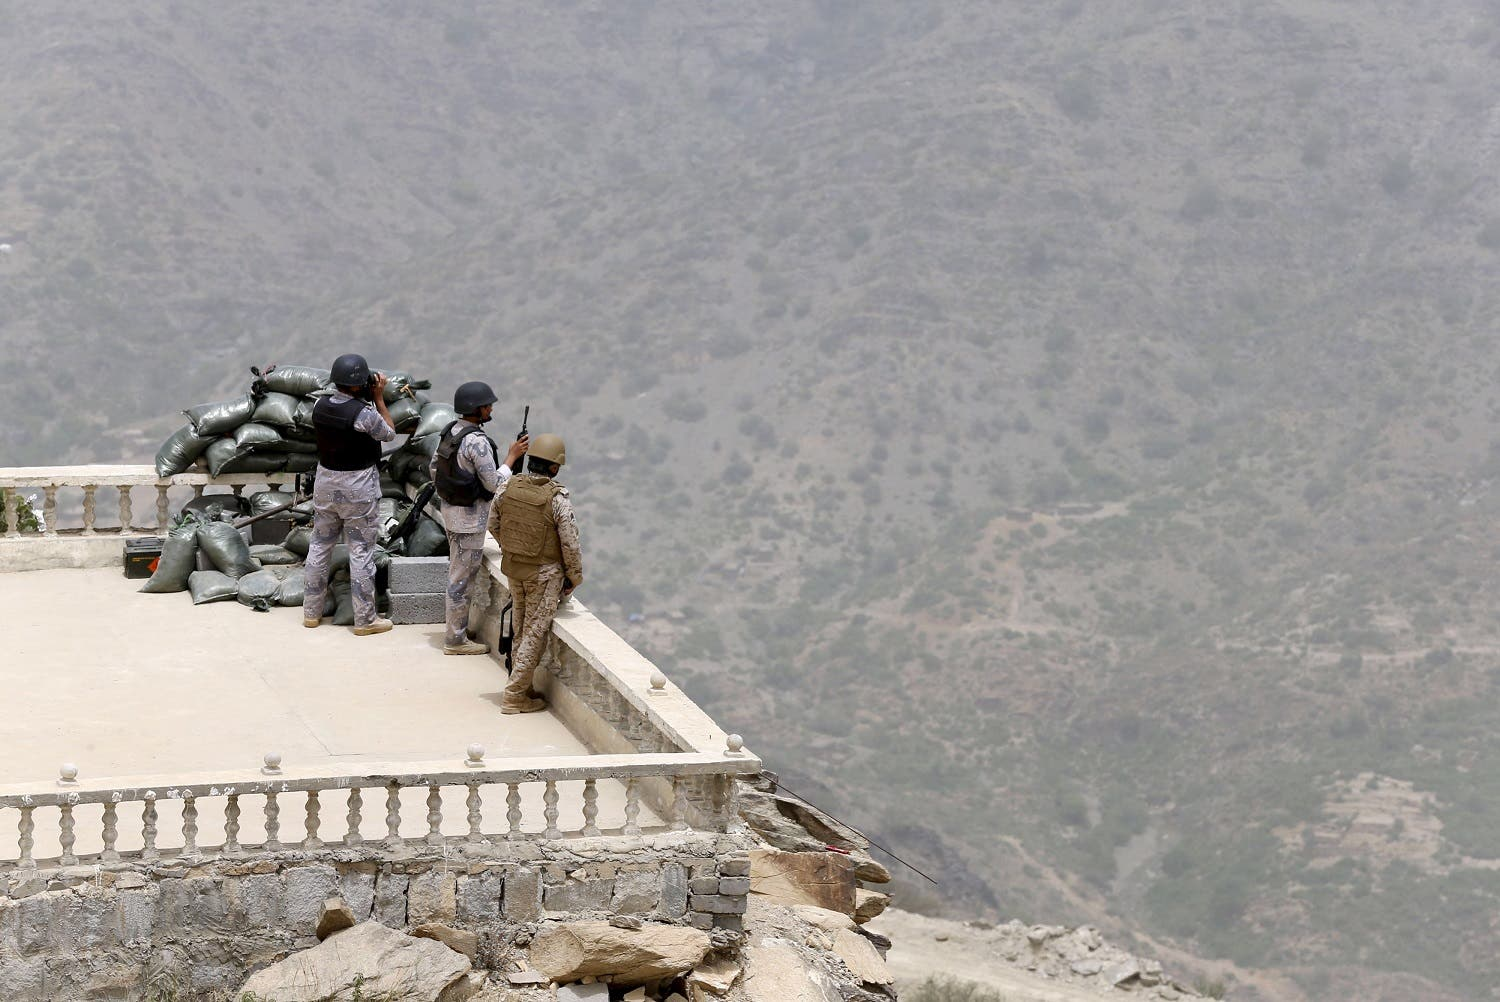 Saudi soldiers take their position at Saudi Arabia's border with Yemen April 6, 2015. (File photo: Reuters)